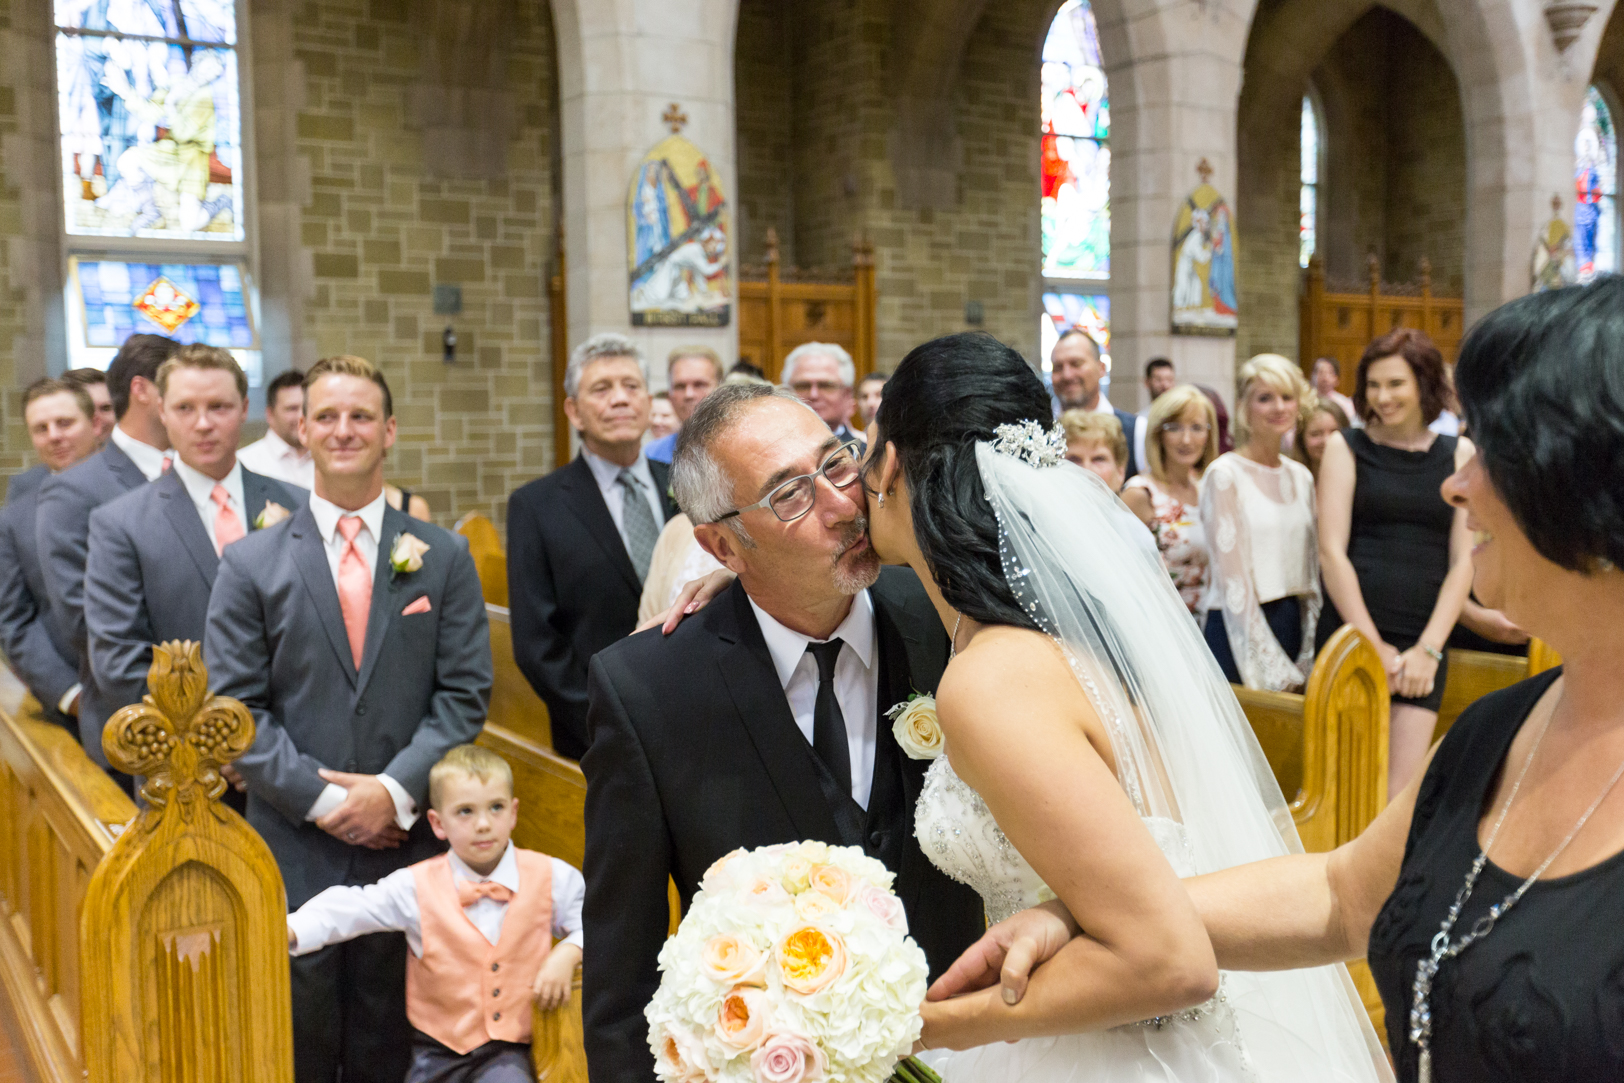 Father giving away bride at St Joseph Basilica Wedding